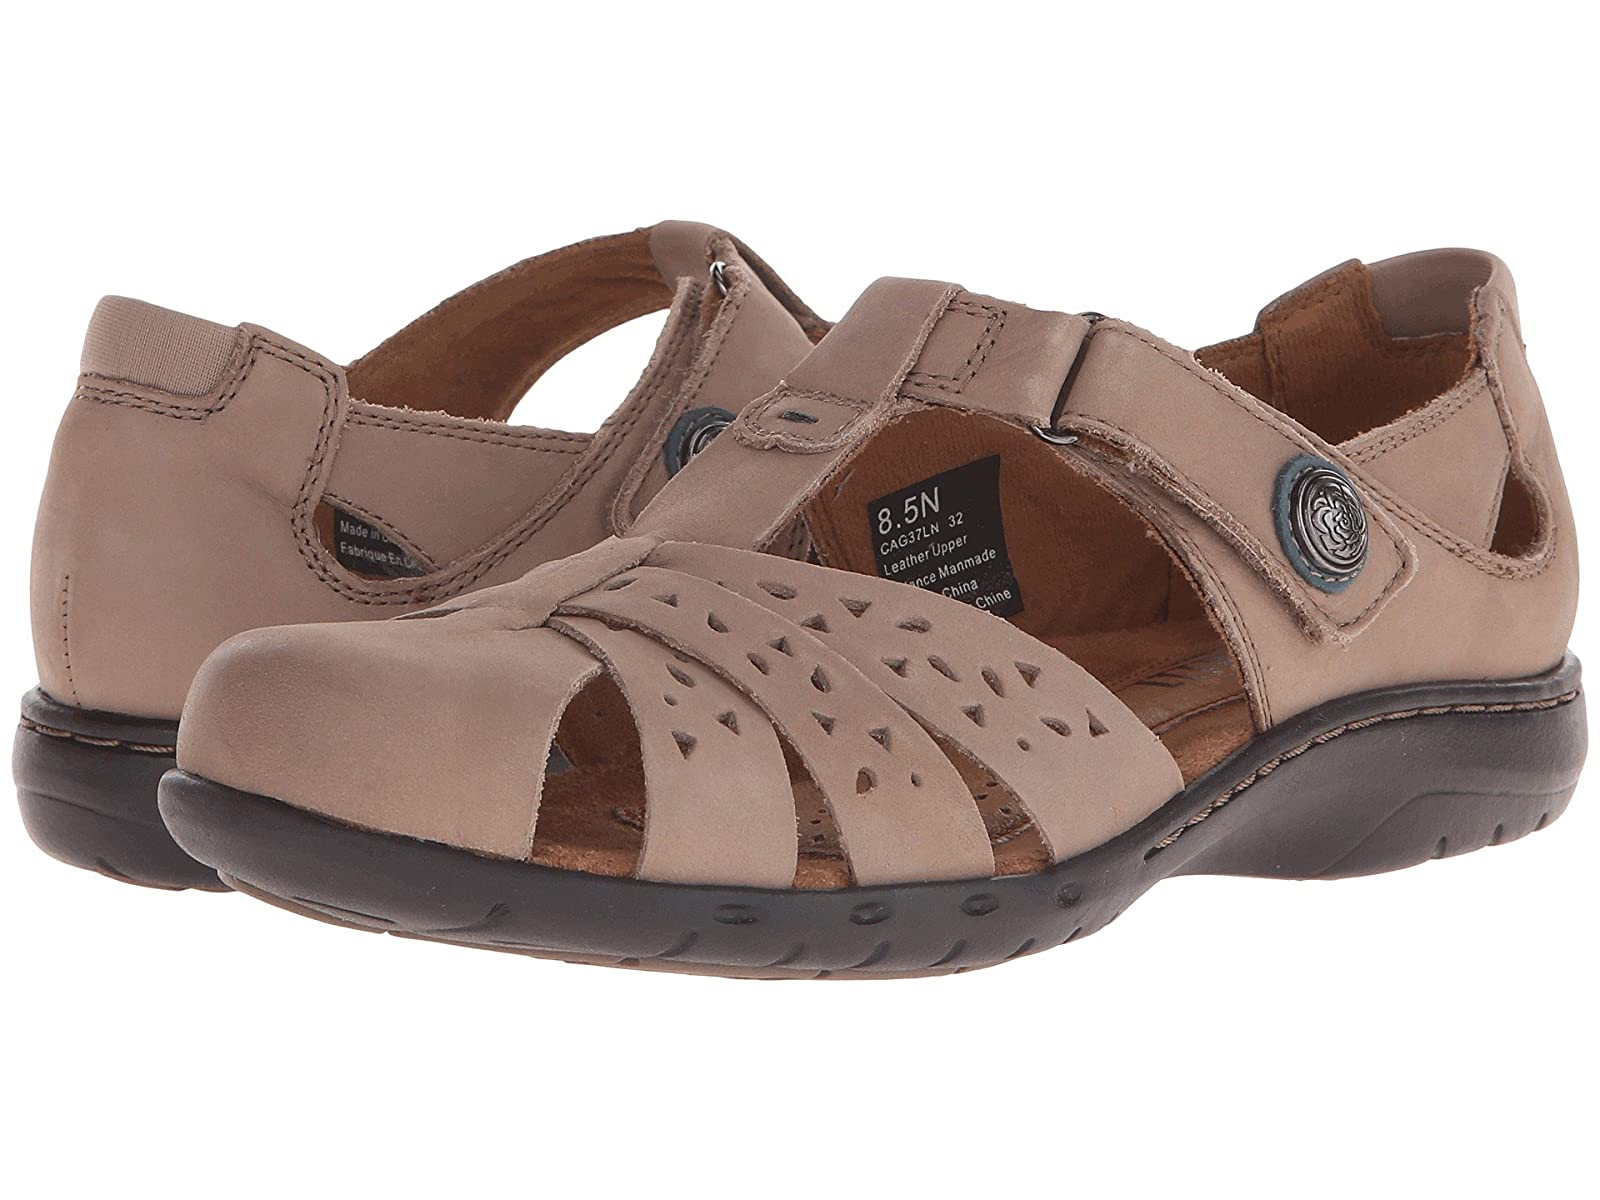 Rockport Cobb Hill Collection Cobb Hill PatinaCheap and distinctive eye-catching shoes